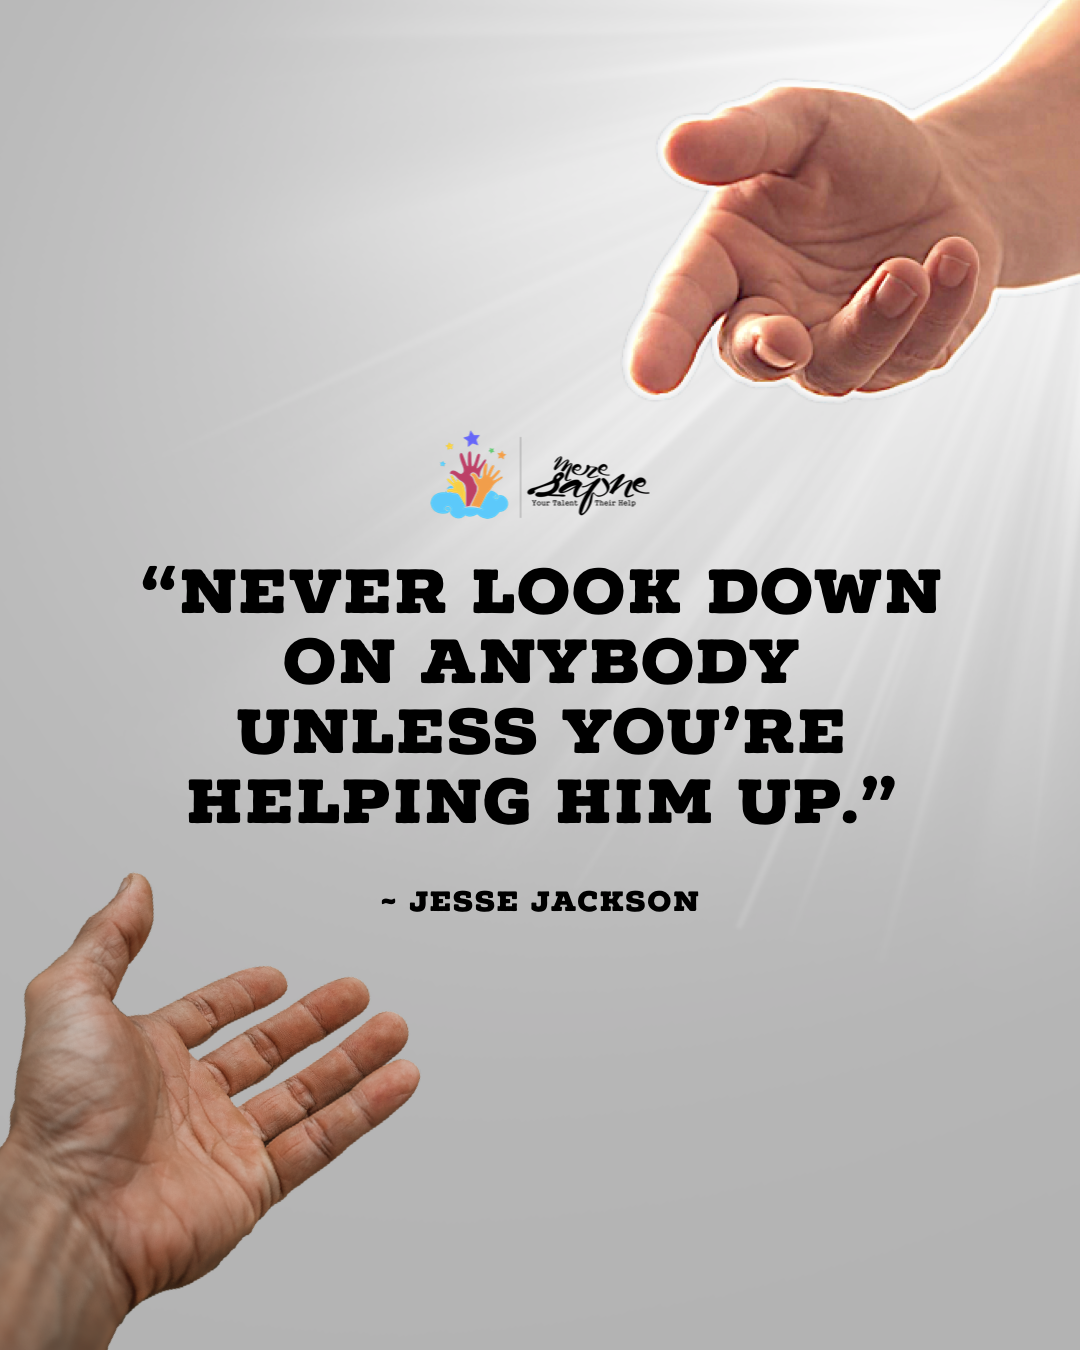 Never Look Down On Anybody Unless You Re Helping Him Up Meresapneorg Mydreams Ngo Help Quotes Monday Pc Hiamitfr Favorite Quotes Daily Quotes Quotes